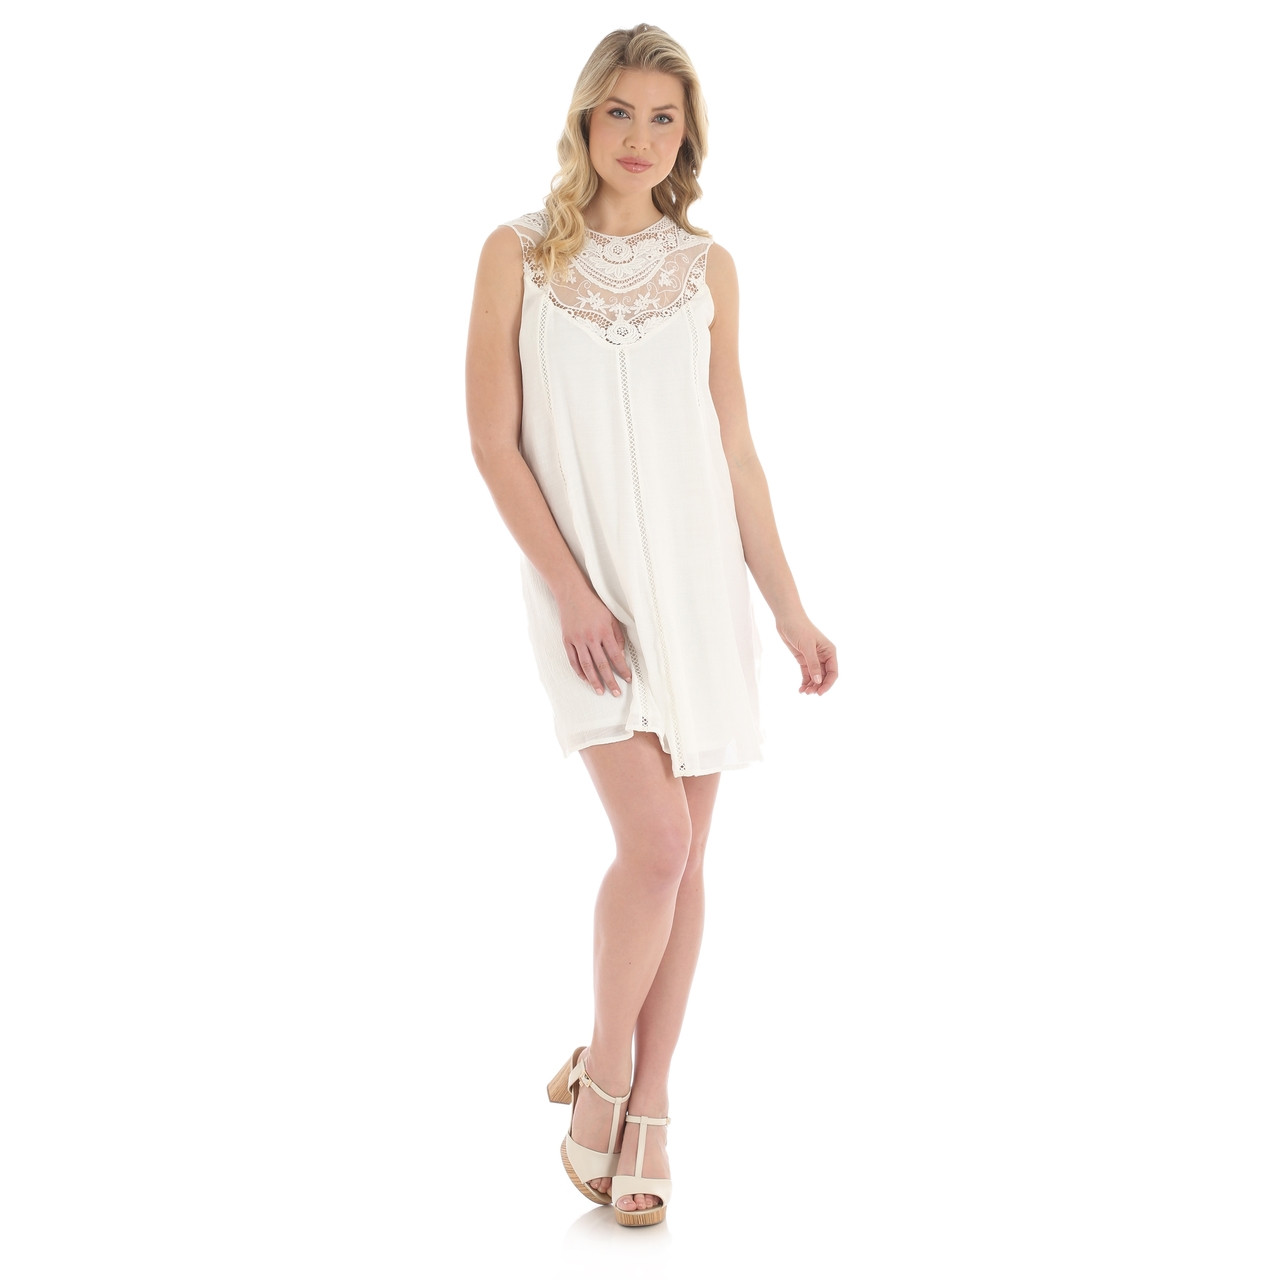 90533c177fa35 Wrangler Sleeveless Swing Dress with Lace - Herbert s Boots and ...